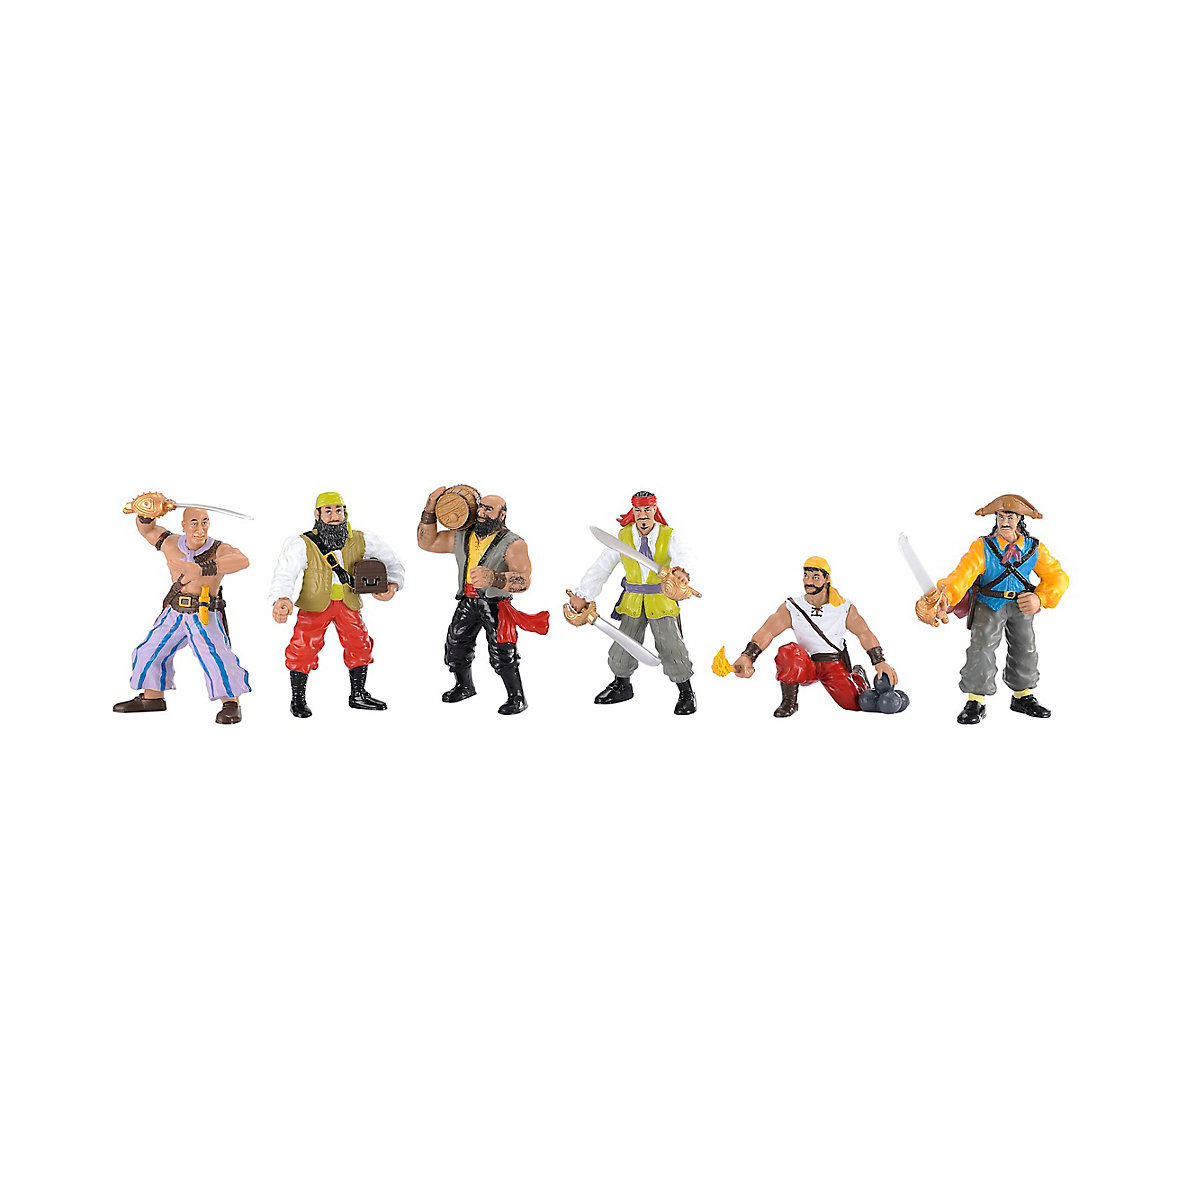 New-ELC-Boys-and-Girls-Pirate-Tub-Set-Toy-From-3-years